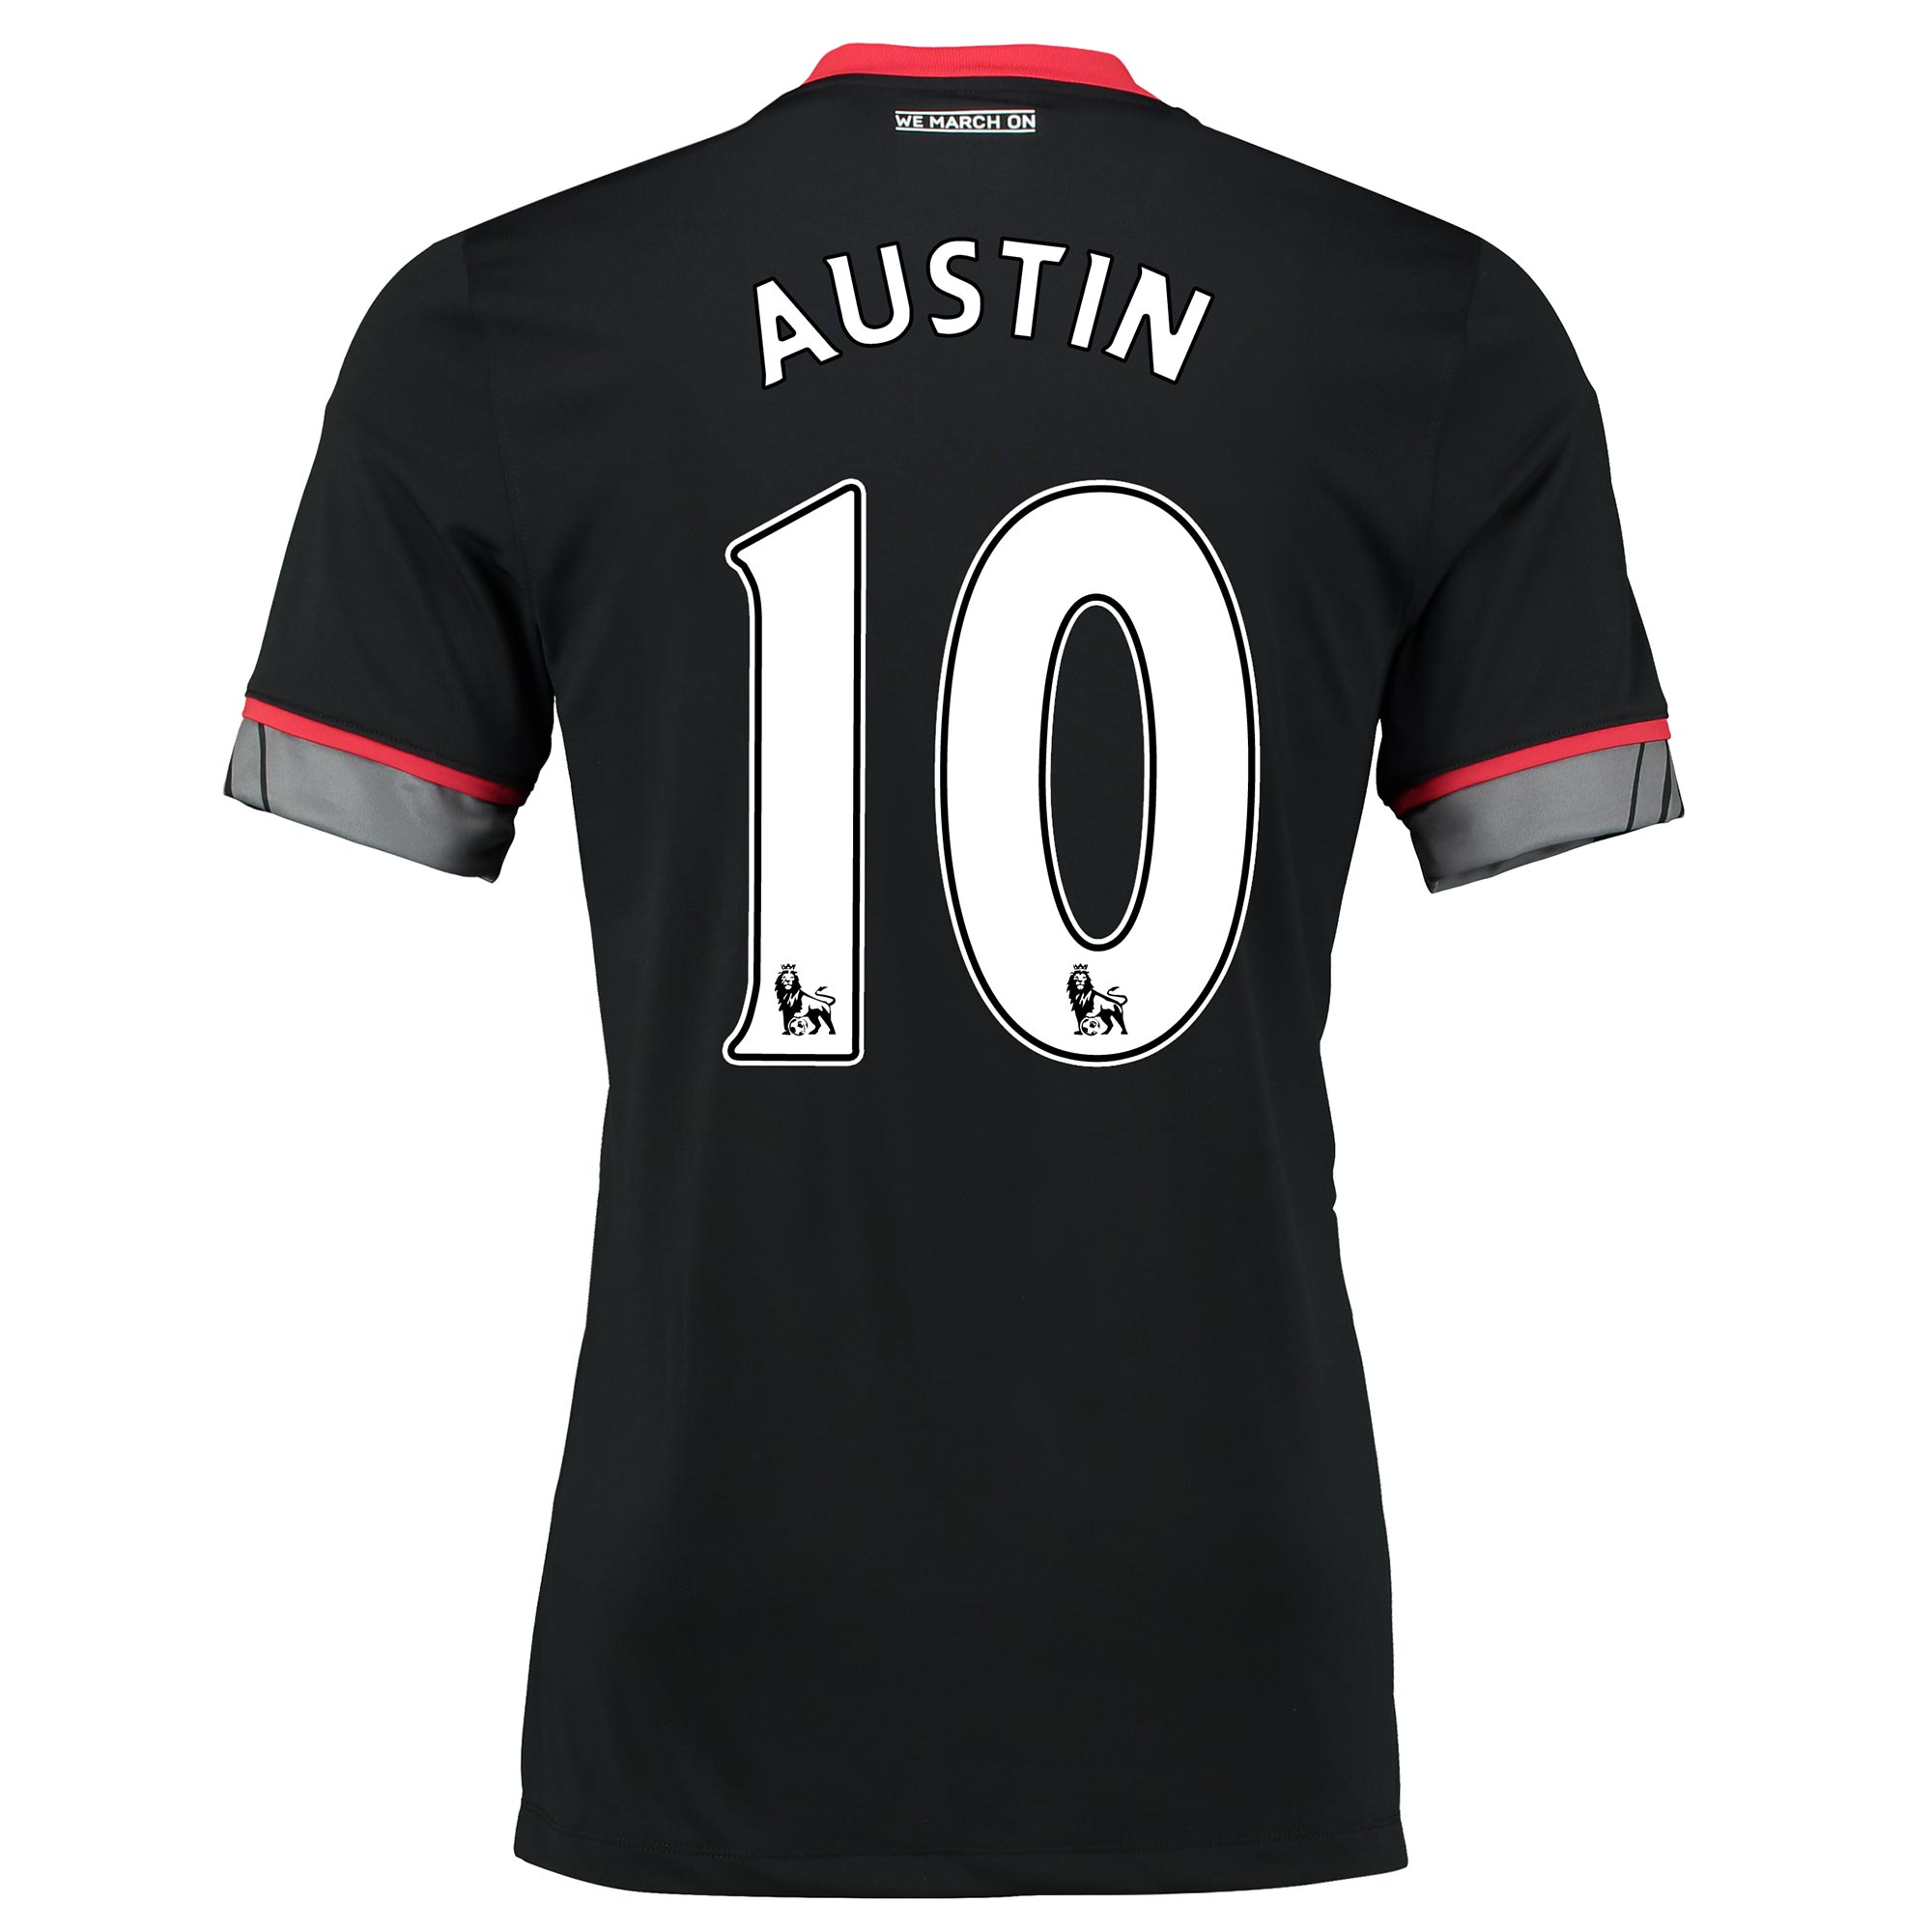 Image of Southampton Away Shirt 2016-17 - Kids Black with Charlie Austin 10 pri, Black